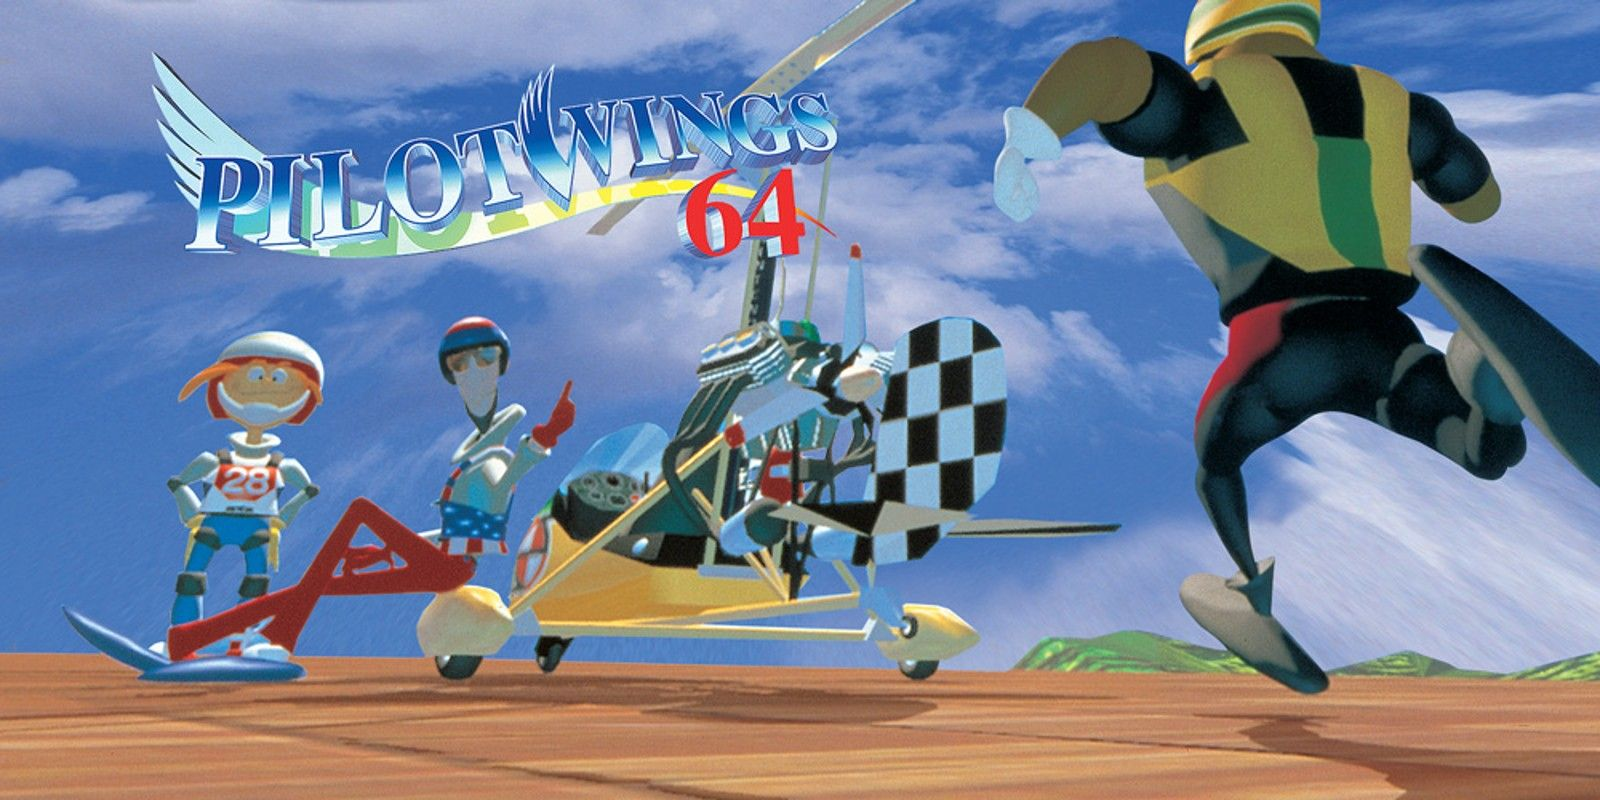 pilotwings 64 pixelwaves blog